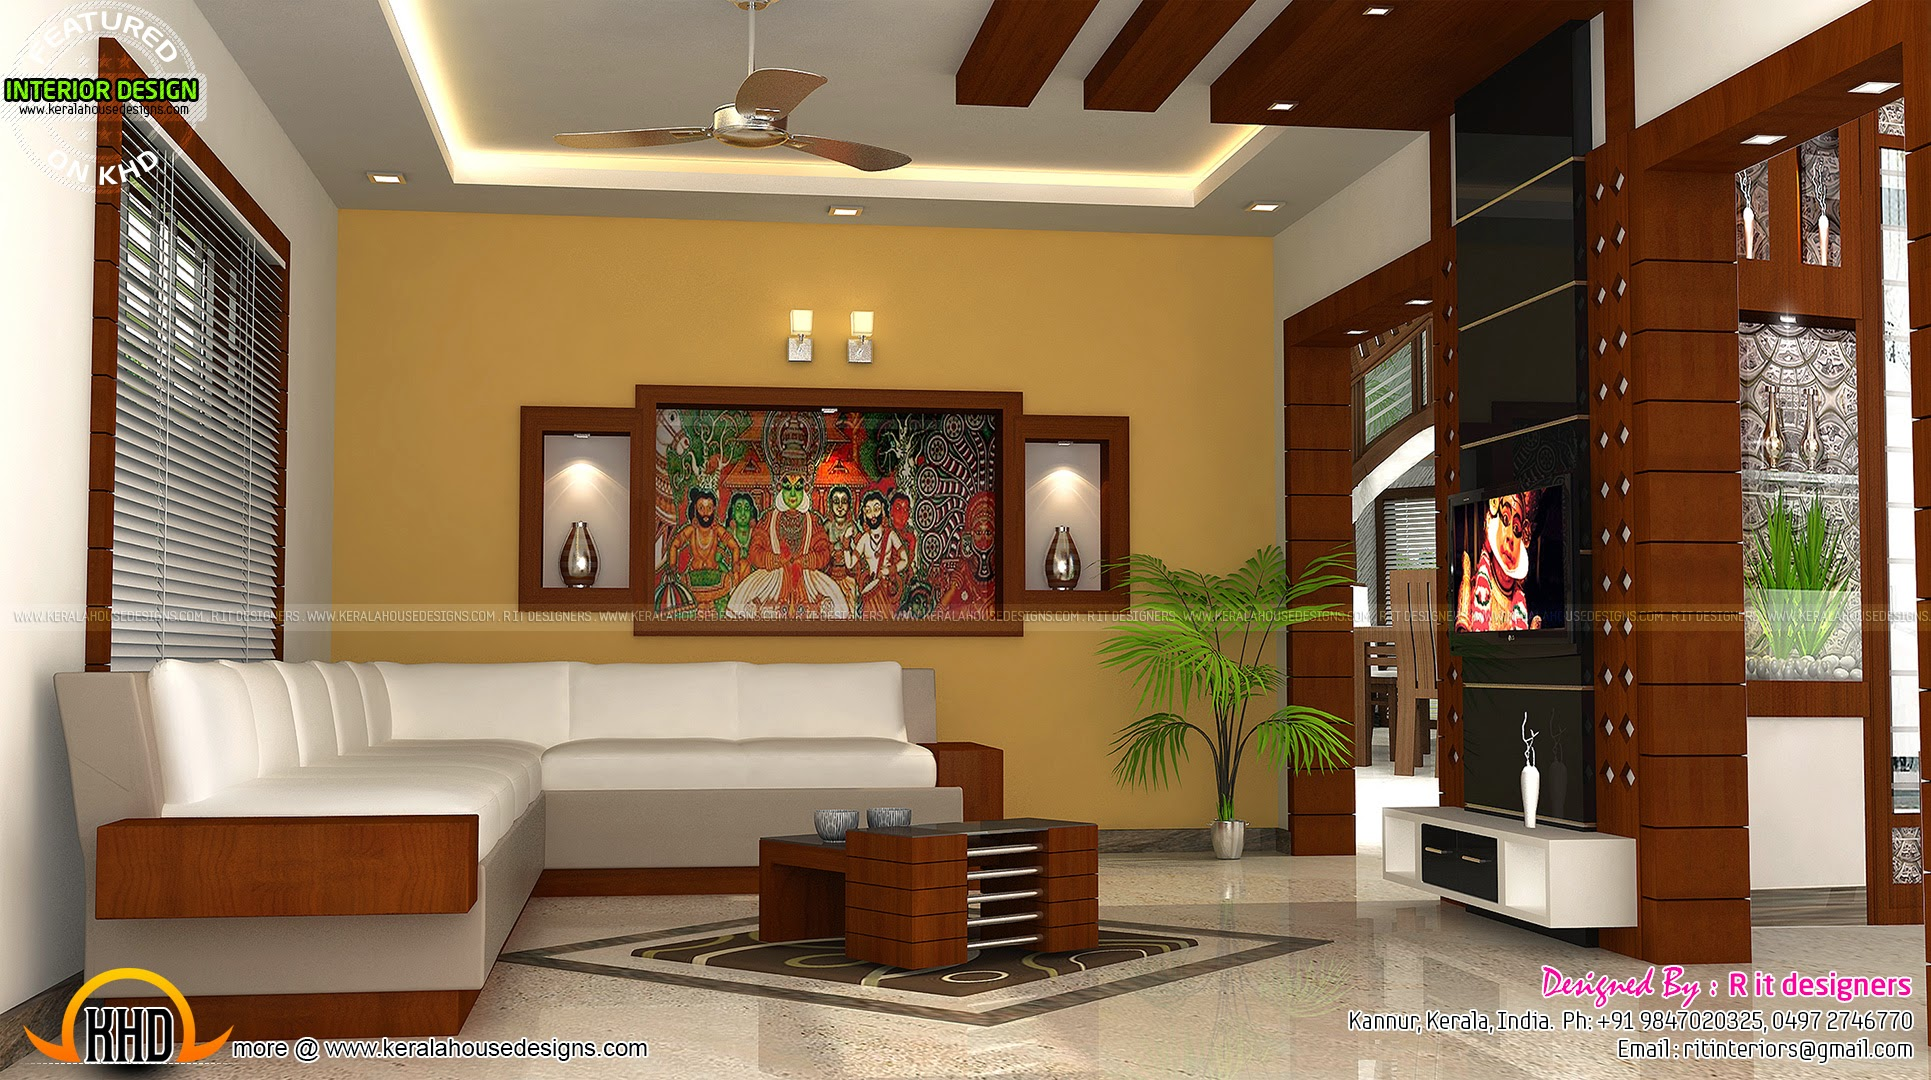 Kerala interior design with cost kerala home design and for Kerala interior designs